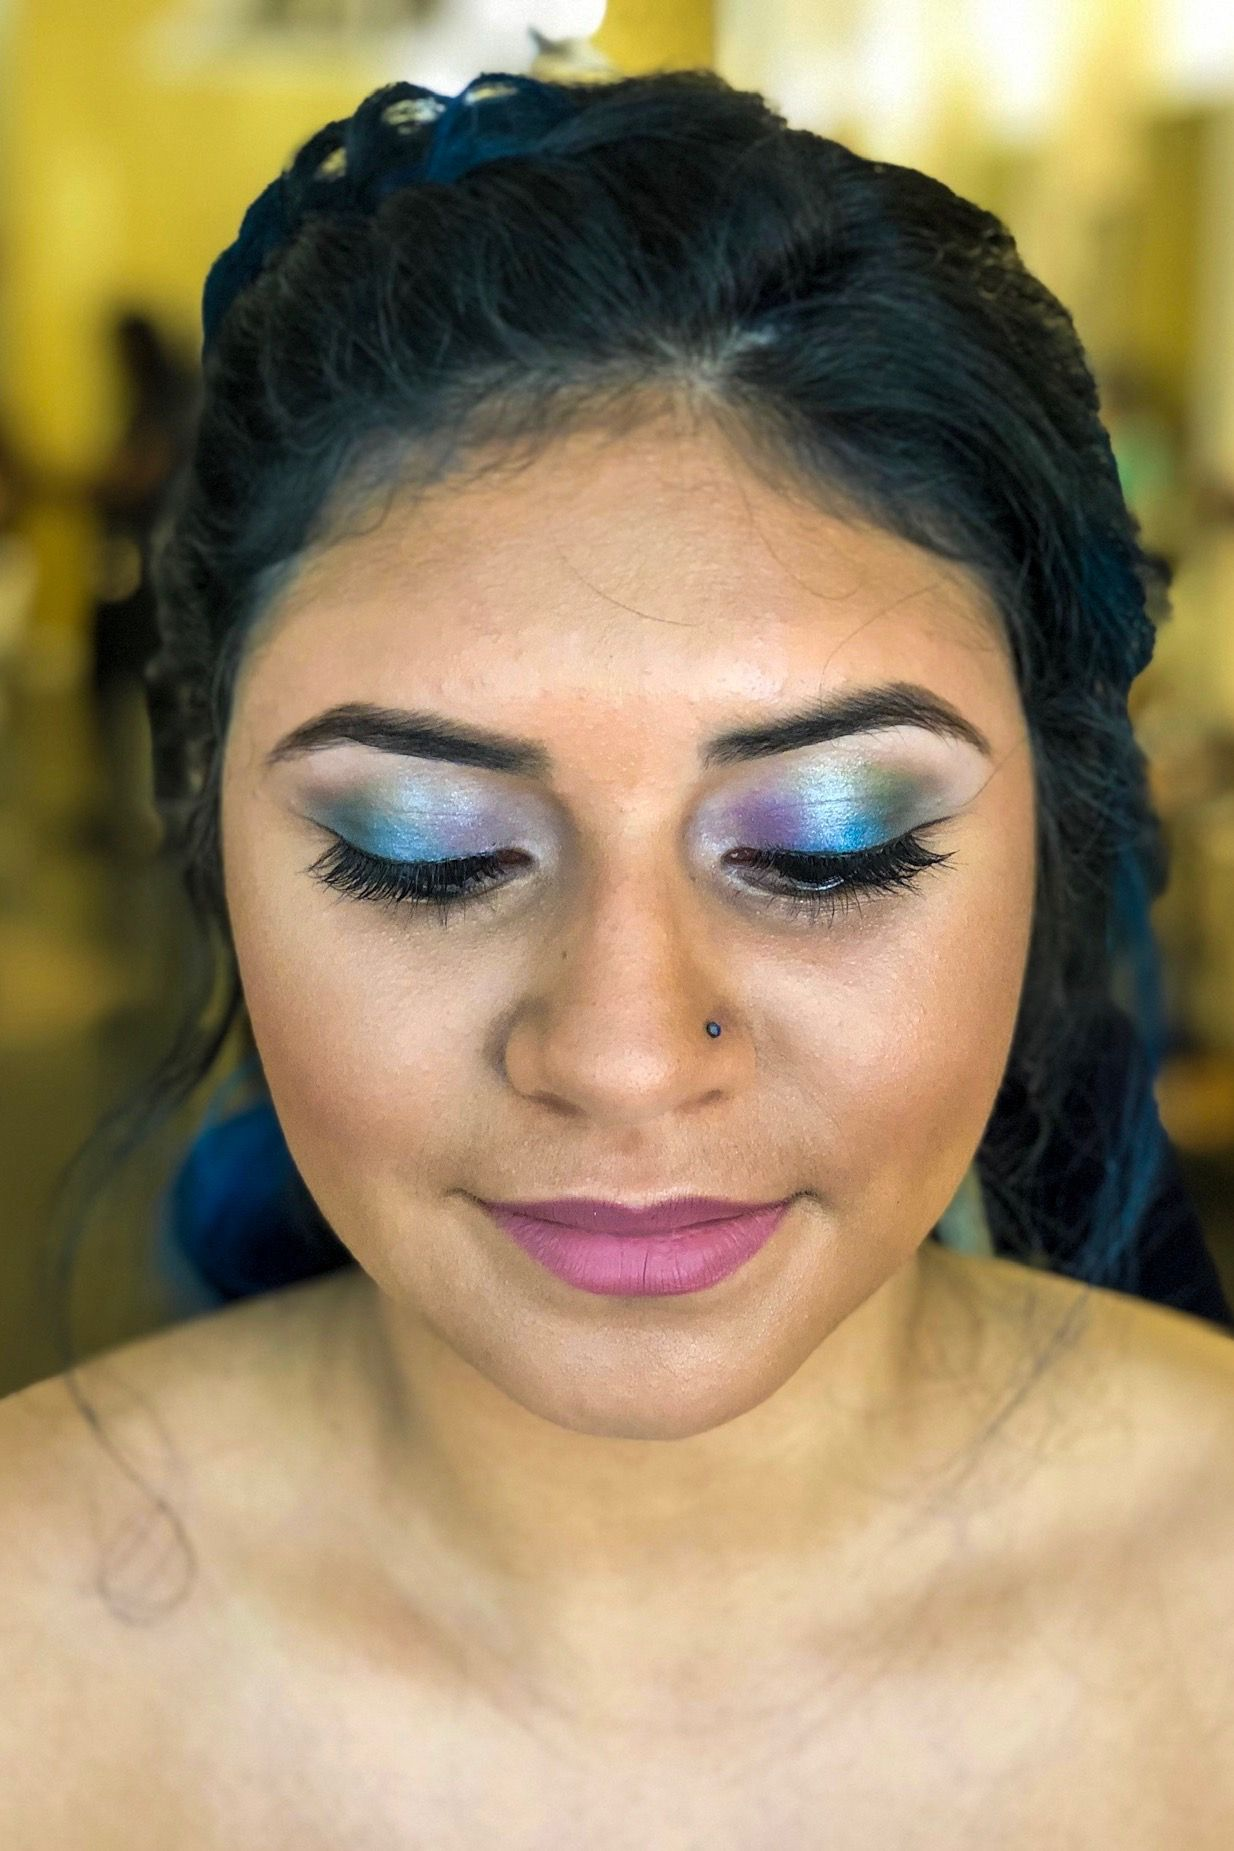 obsessed with this mermaid eye makeup for prom!! love the